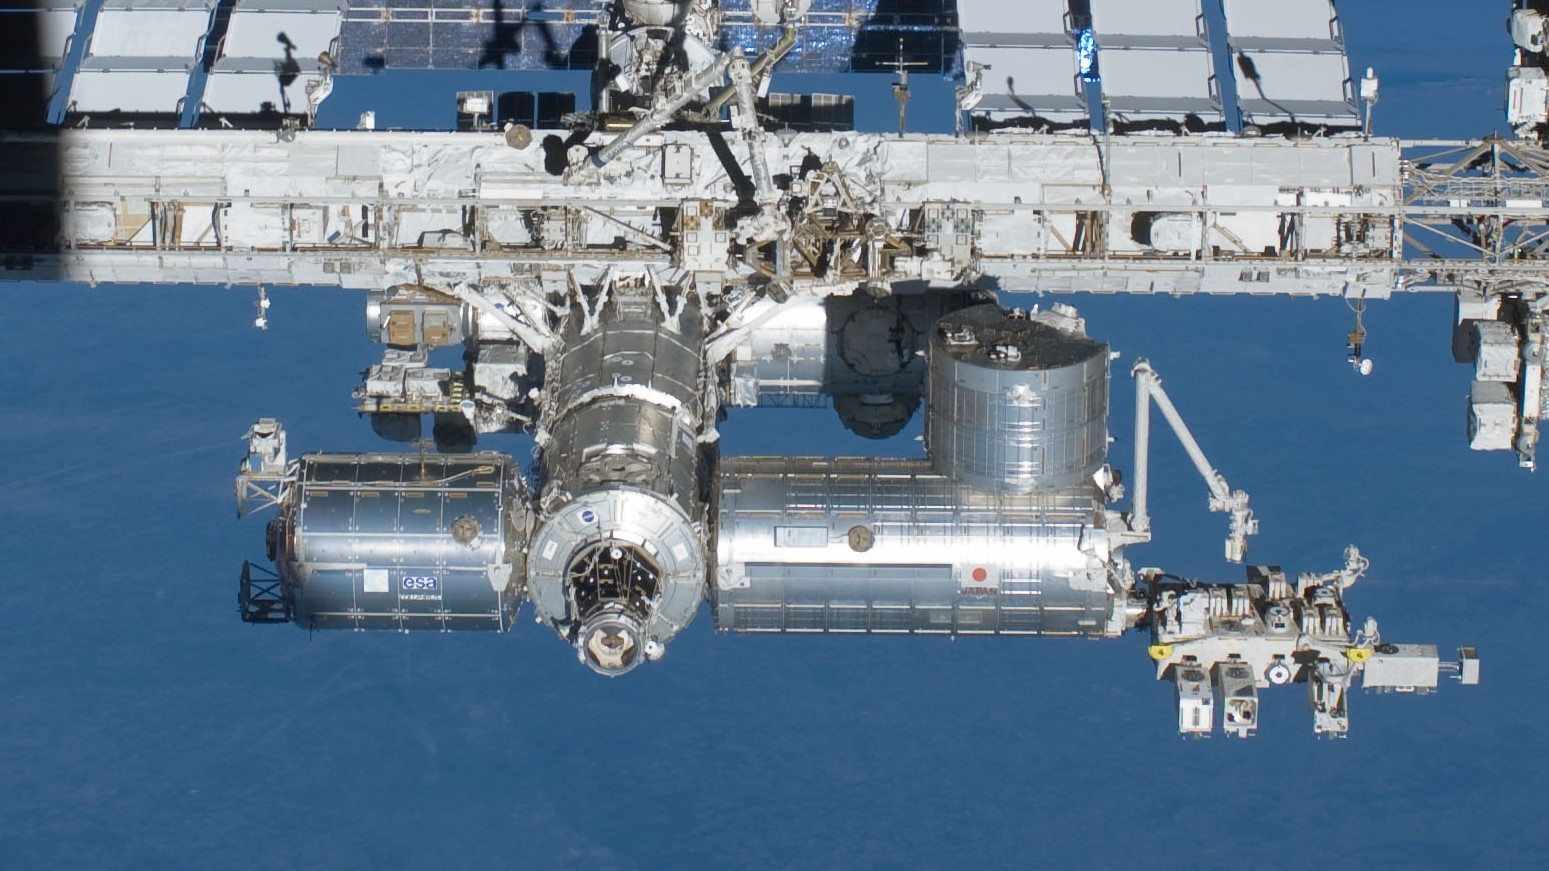 """The European Space Agency's Columbus module, lower left, has been in space for more than 10 years and has sustained """"hundreds"""" of debris impacts. Photo Credit: NASA"""